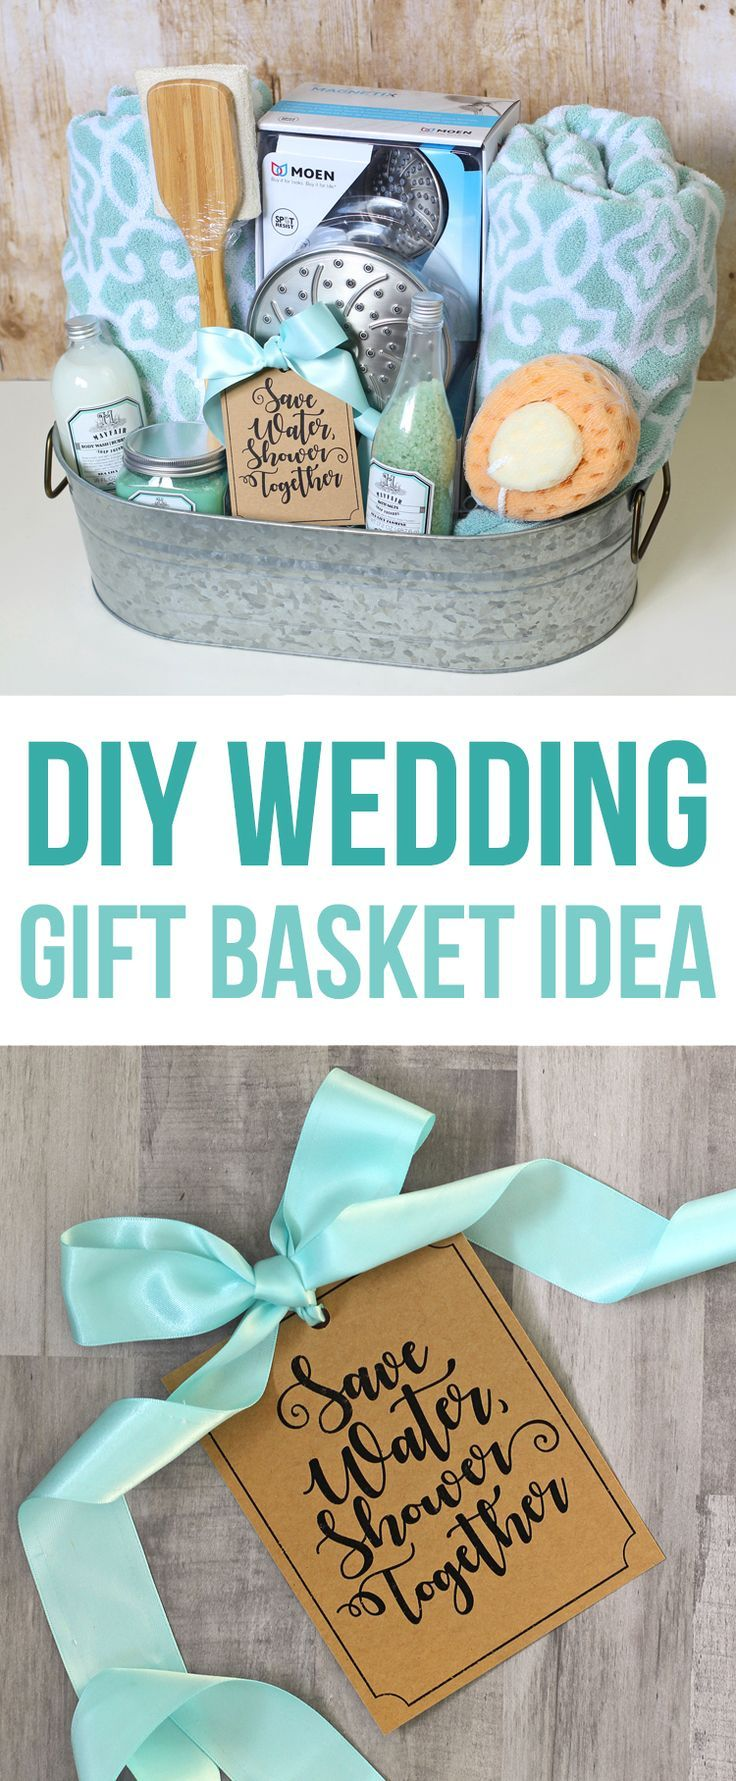 Wedding Themed Gift Basket : Wedding gifts on Pinterest Creative wedding gifts, Couples wedding ...